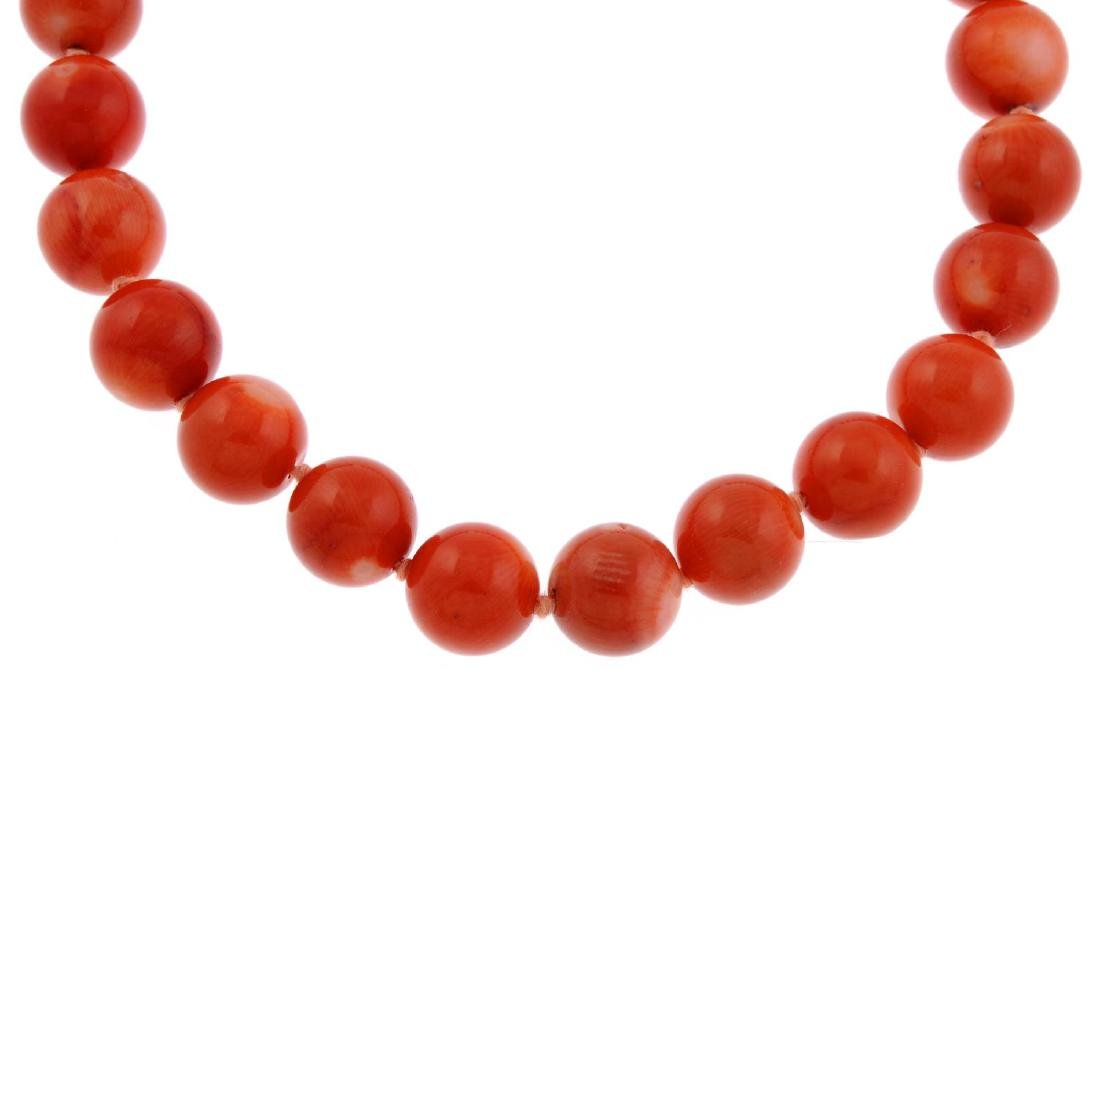 A dyed coral bead necklace. A single row of twenty-nine